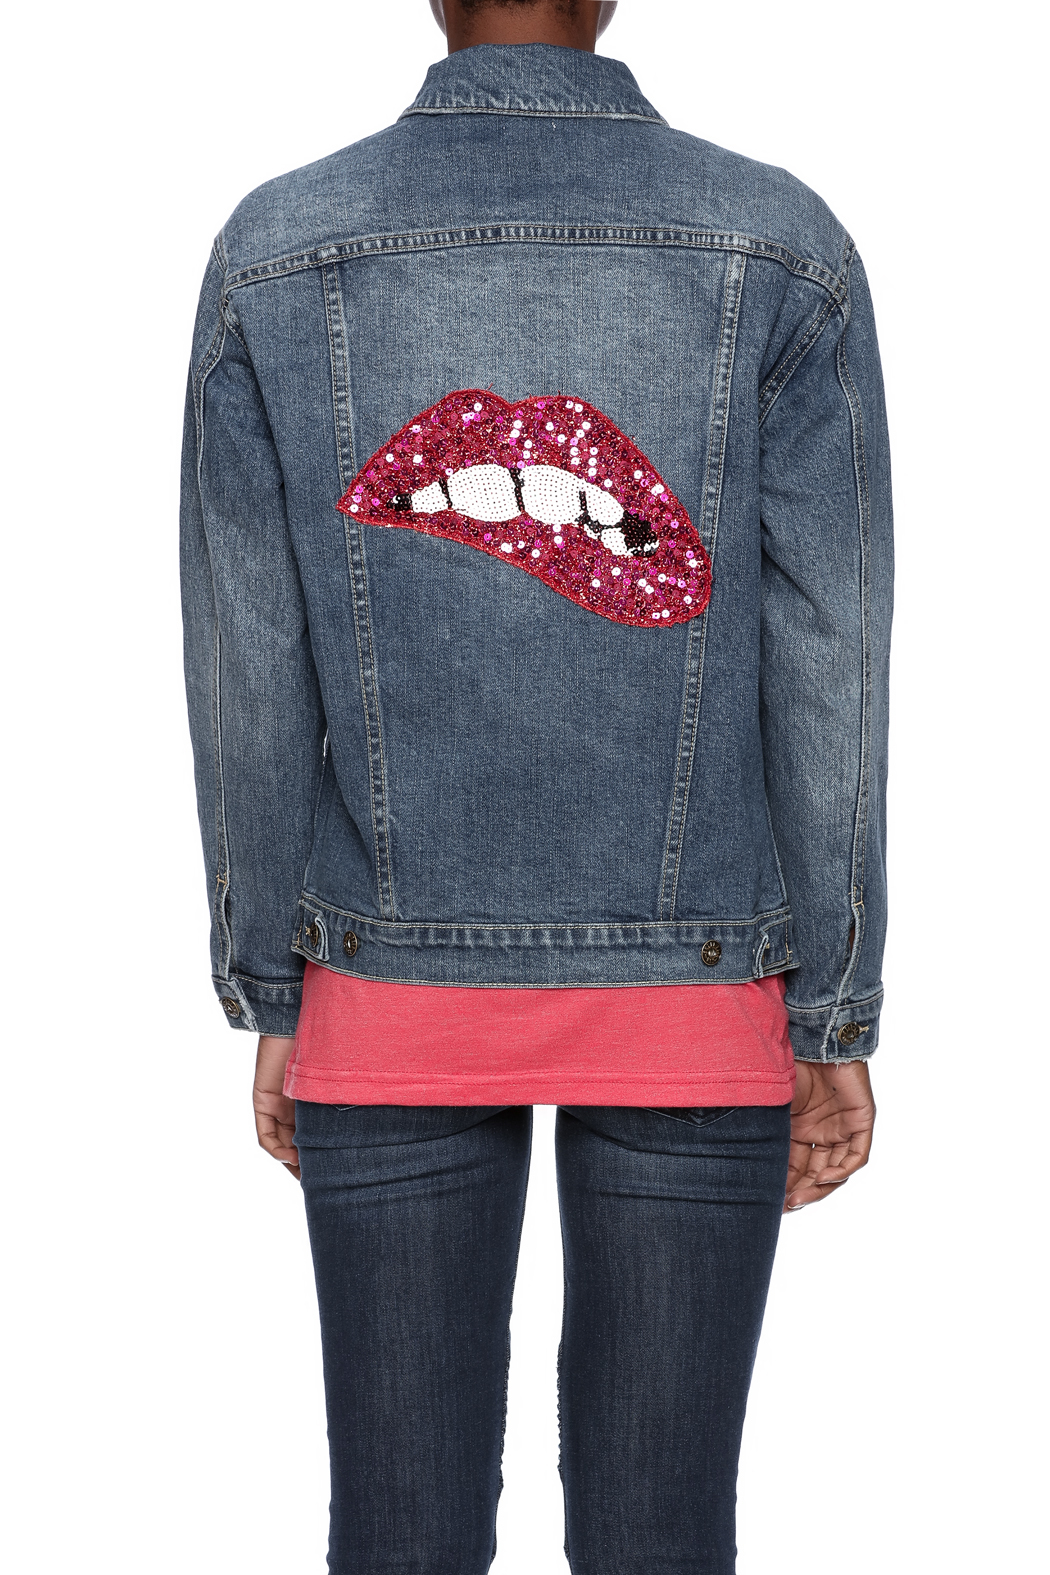 Sneak Peek Embellished Denim Jacket from Long Island by Max  Ginos  Shoptiques